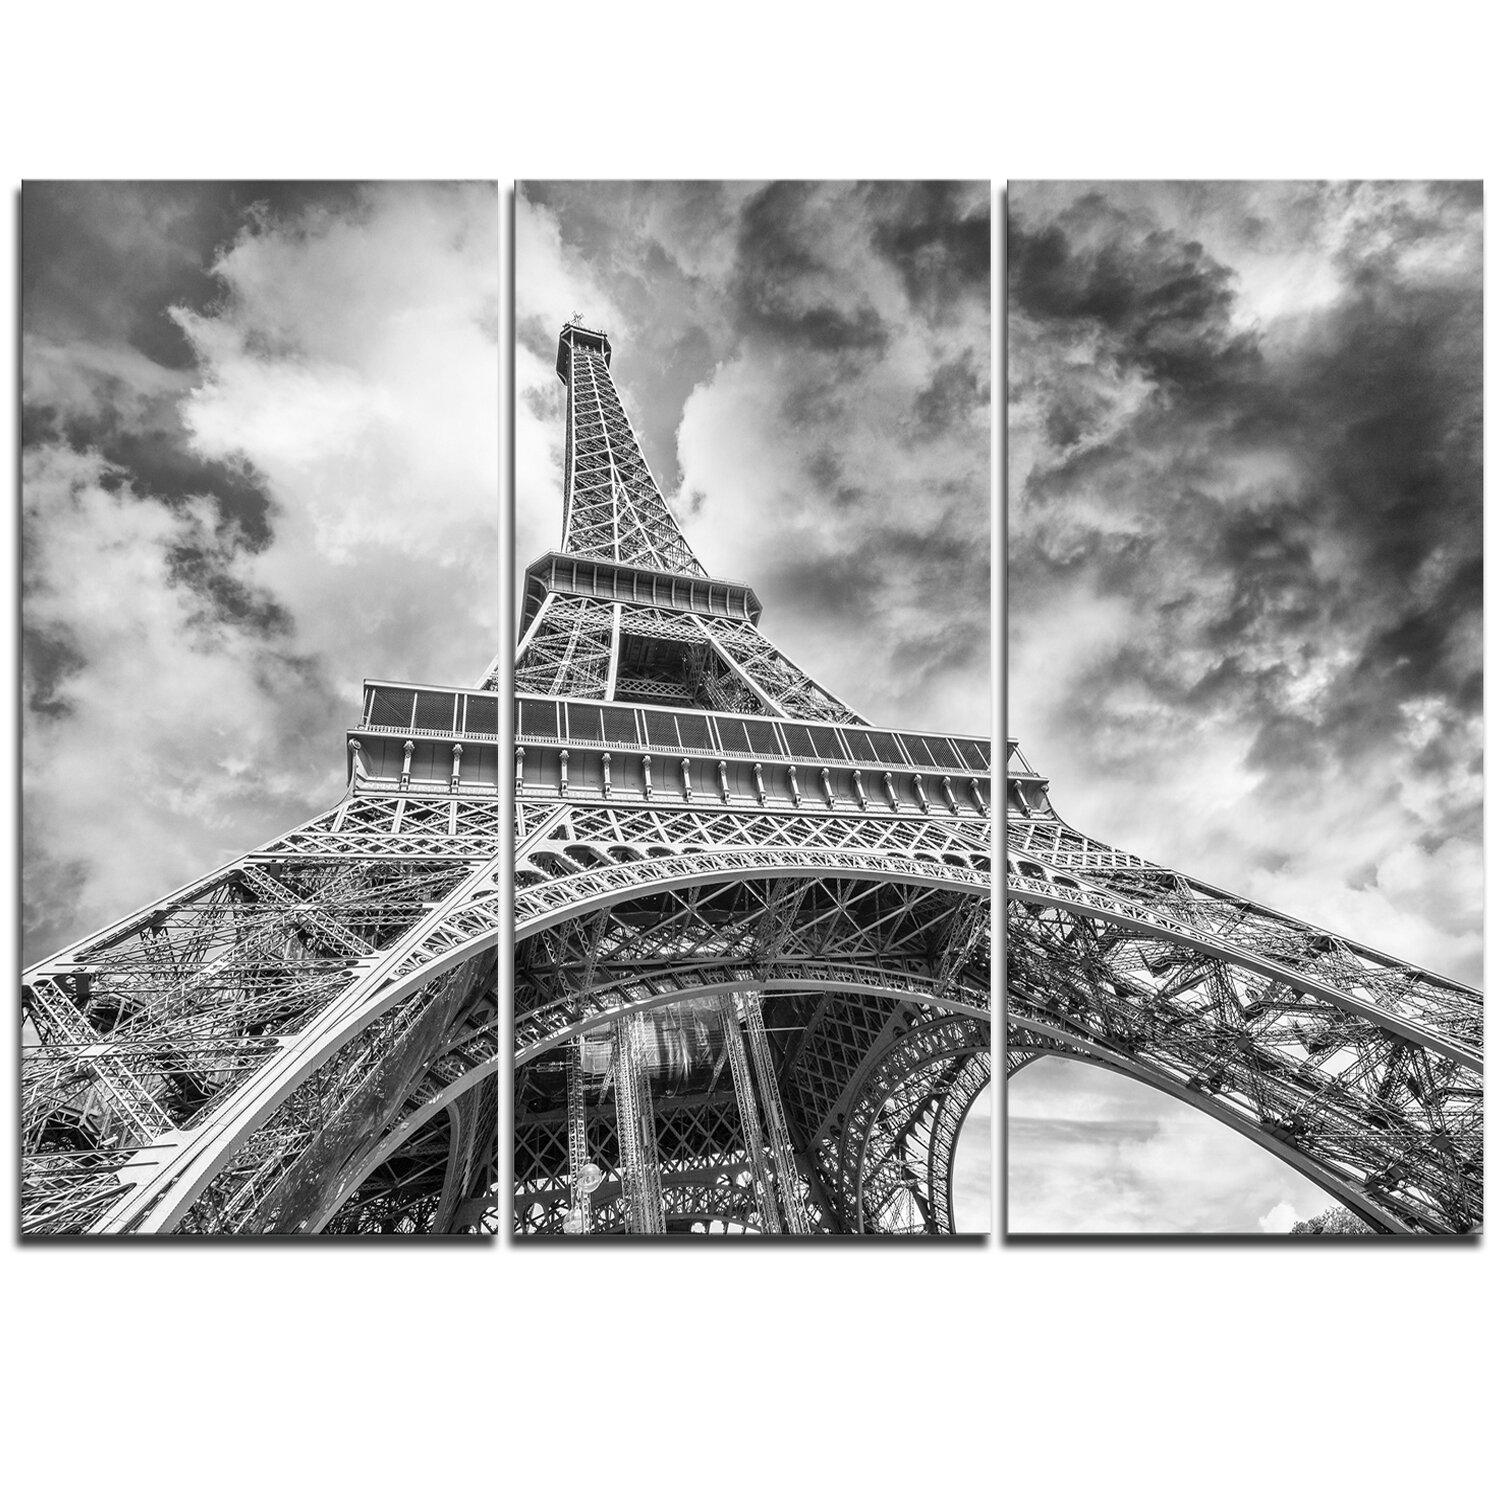 Designart Black And White View Of Paris Eiffel Tower 3 Piece Graphic Art On Wrapped Canvas Set Wayfair